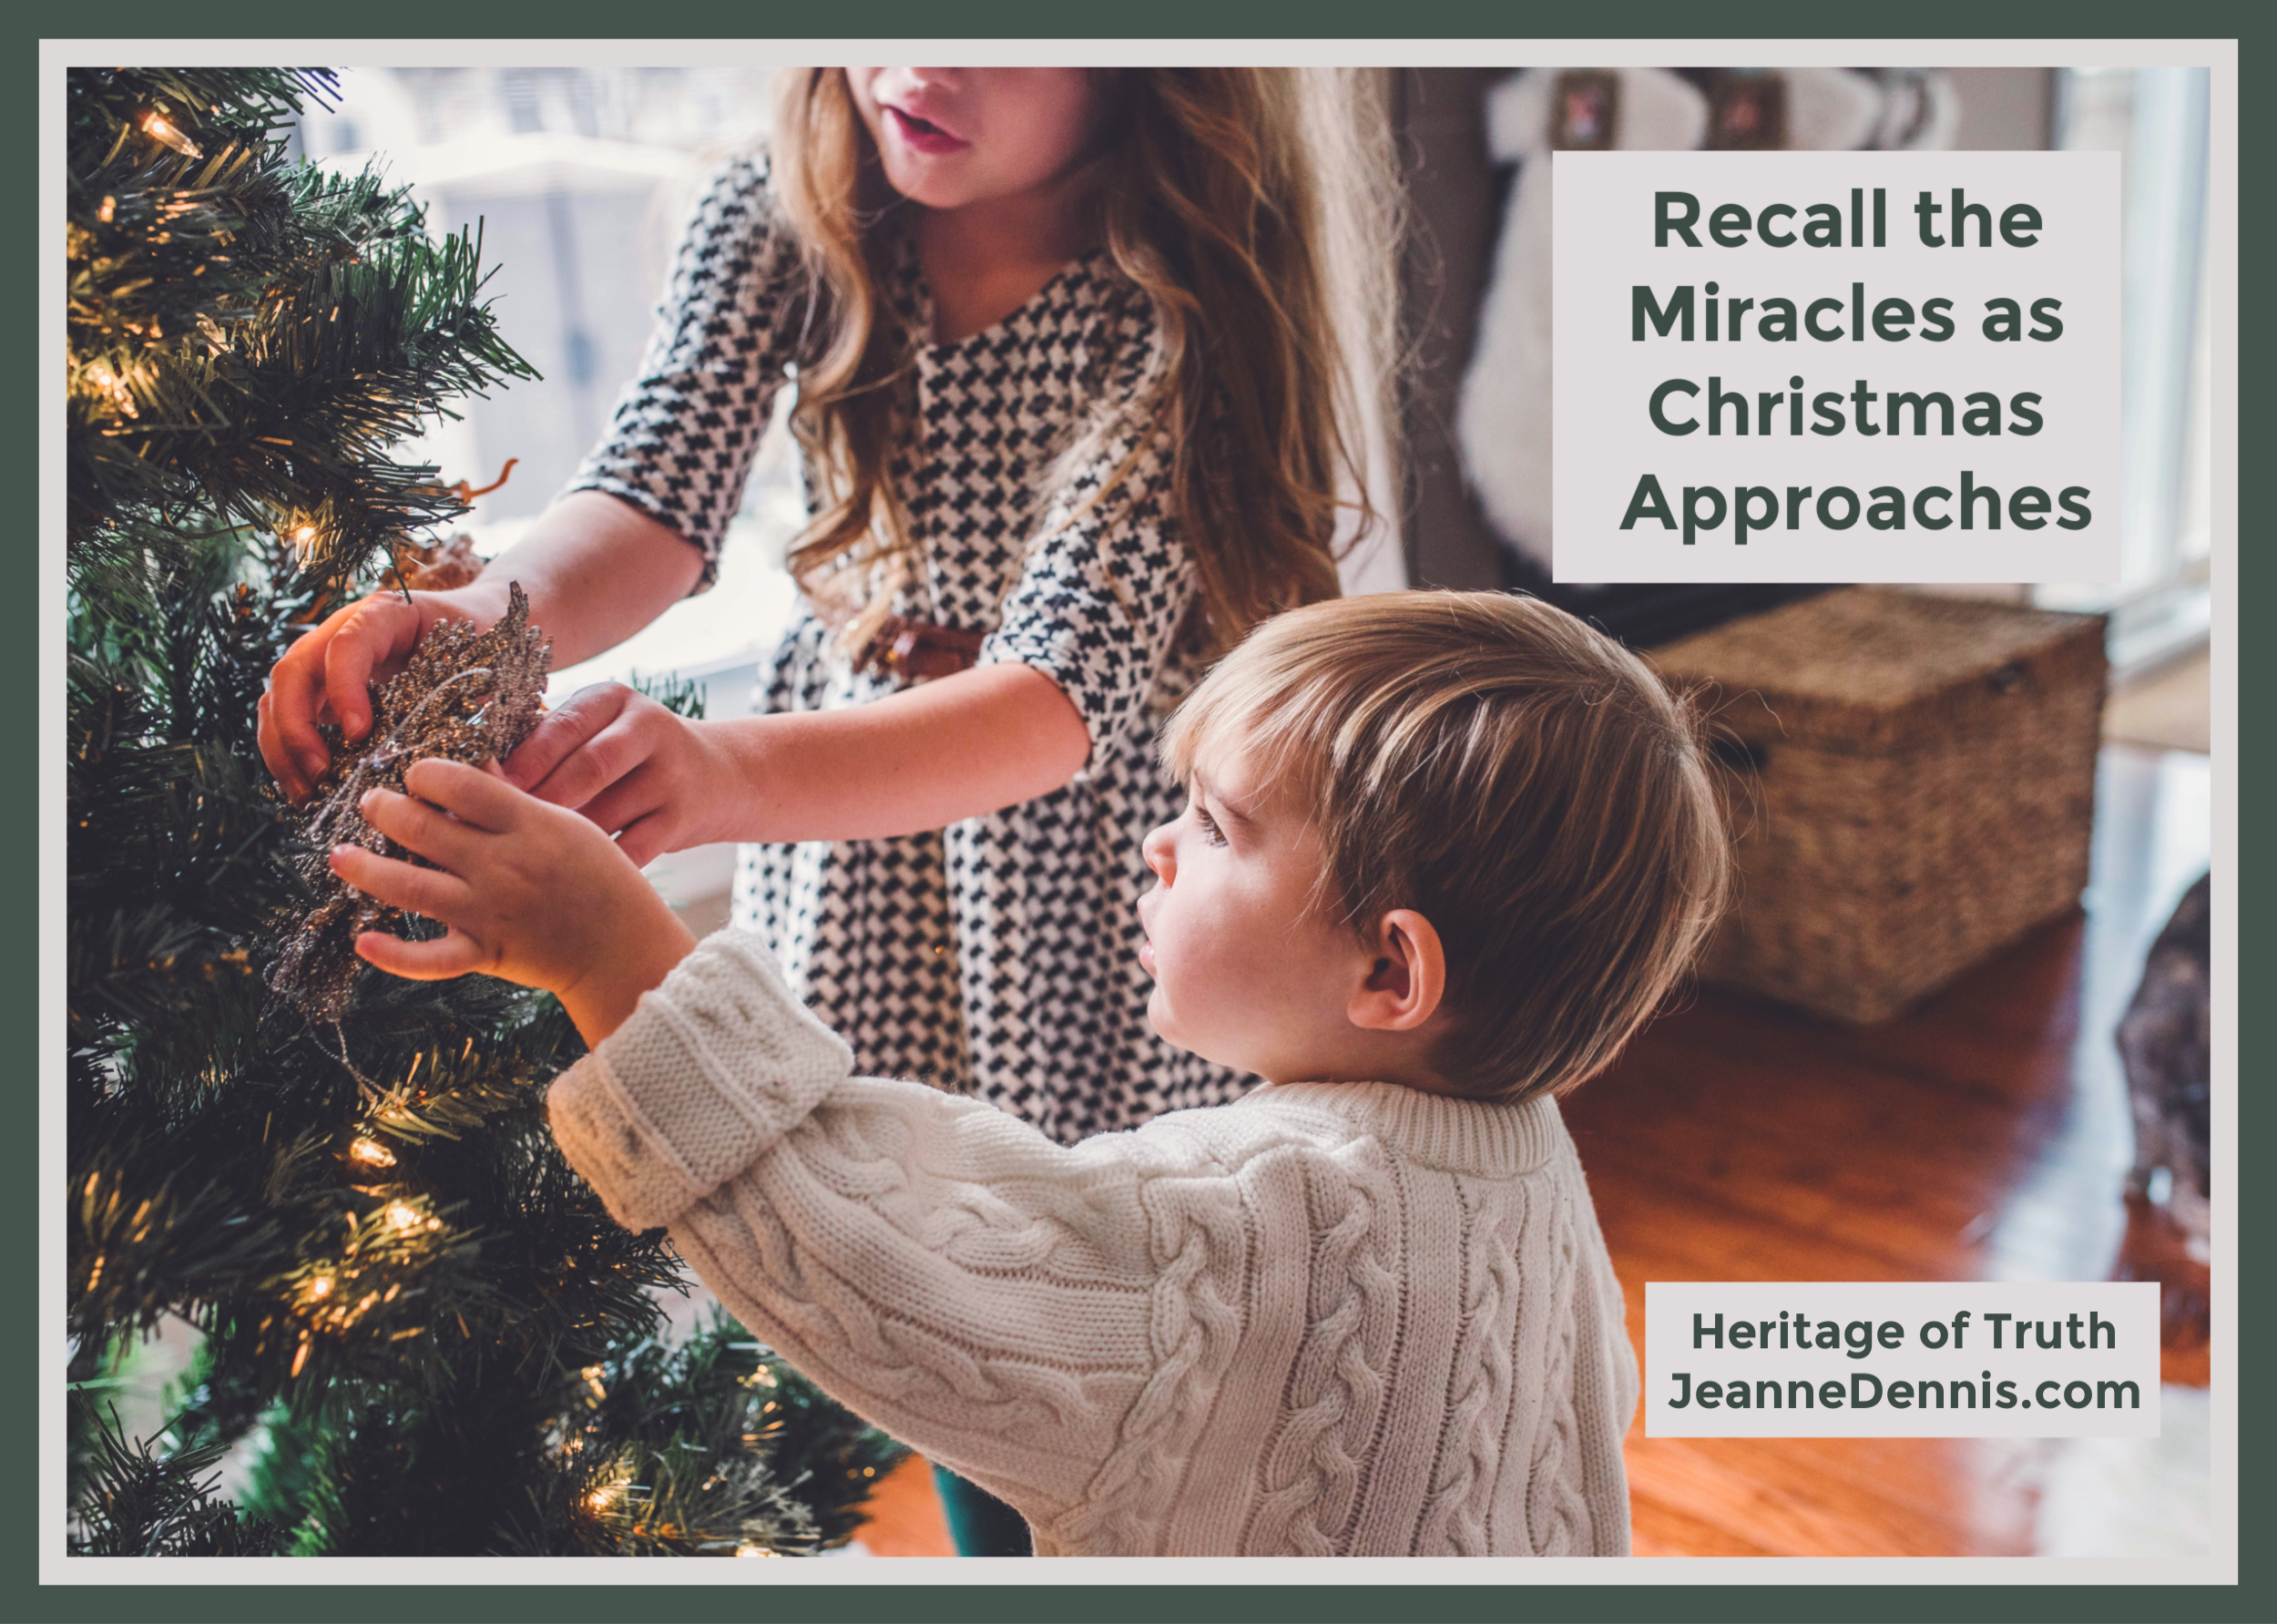 Recall the Miracles as Christmas Approaches